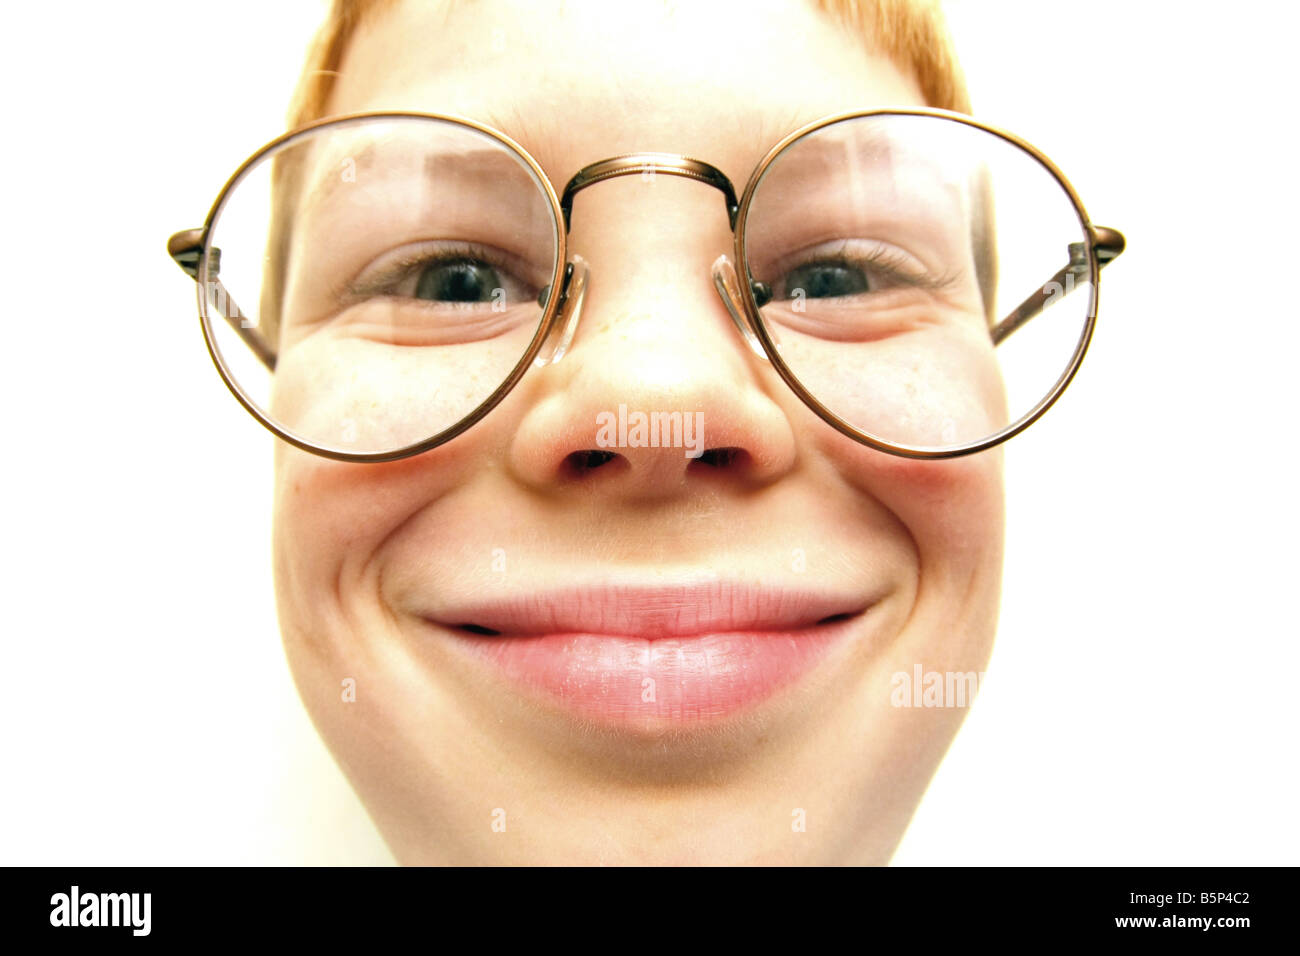 98821a9b1878 8 year old boy wearing glasses Stock Photo: 20770066 - Alamy